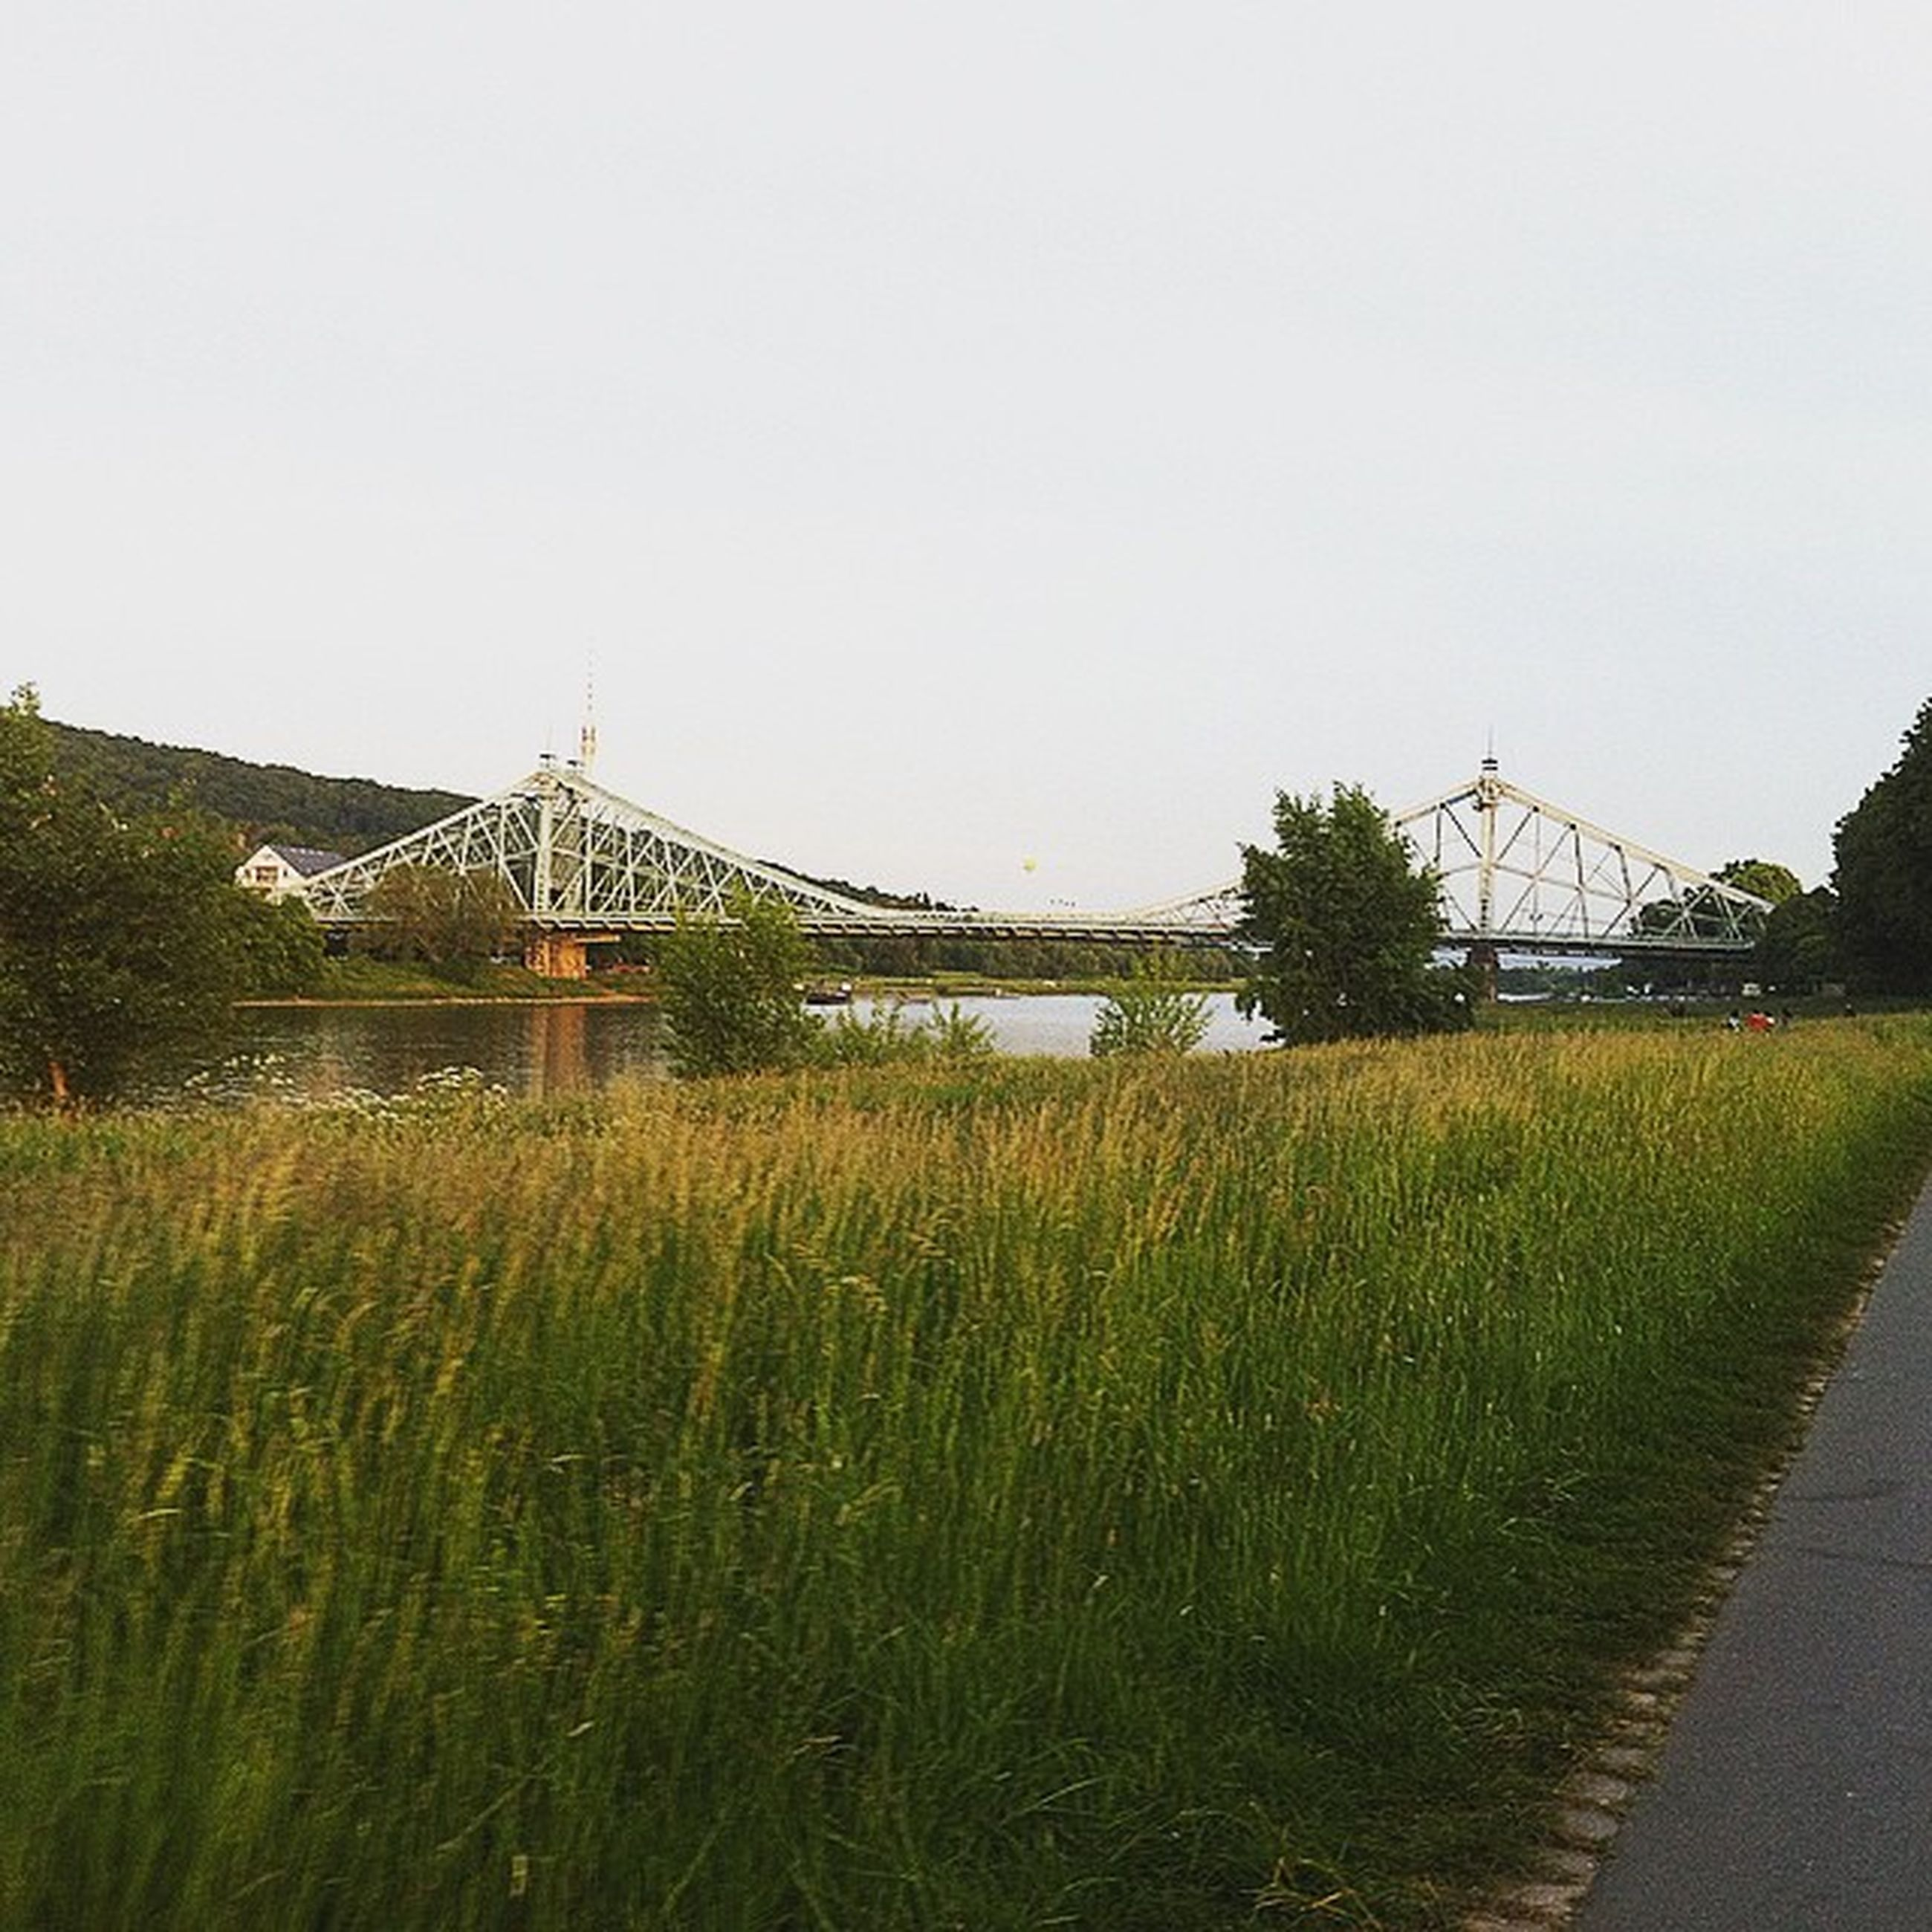 clear sky, architecture, built structure, grass, copy space, building exterior, field, connection, plant, green color, growth, nature, grassy, bridge - man made structure, day, landscape, outdoors, water, tranquility, no people